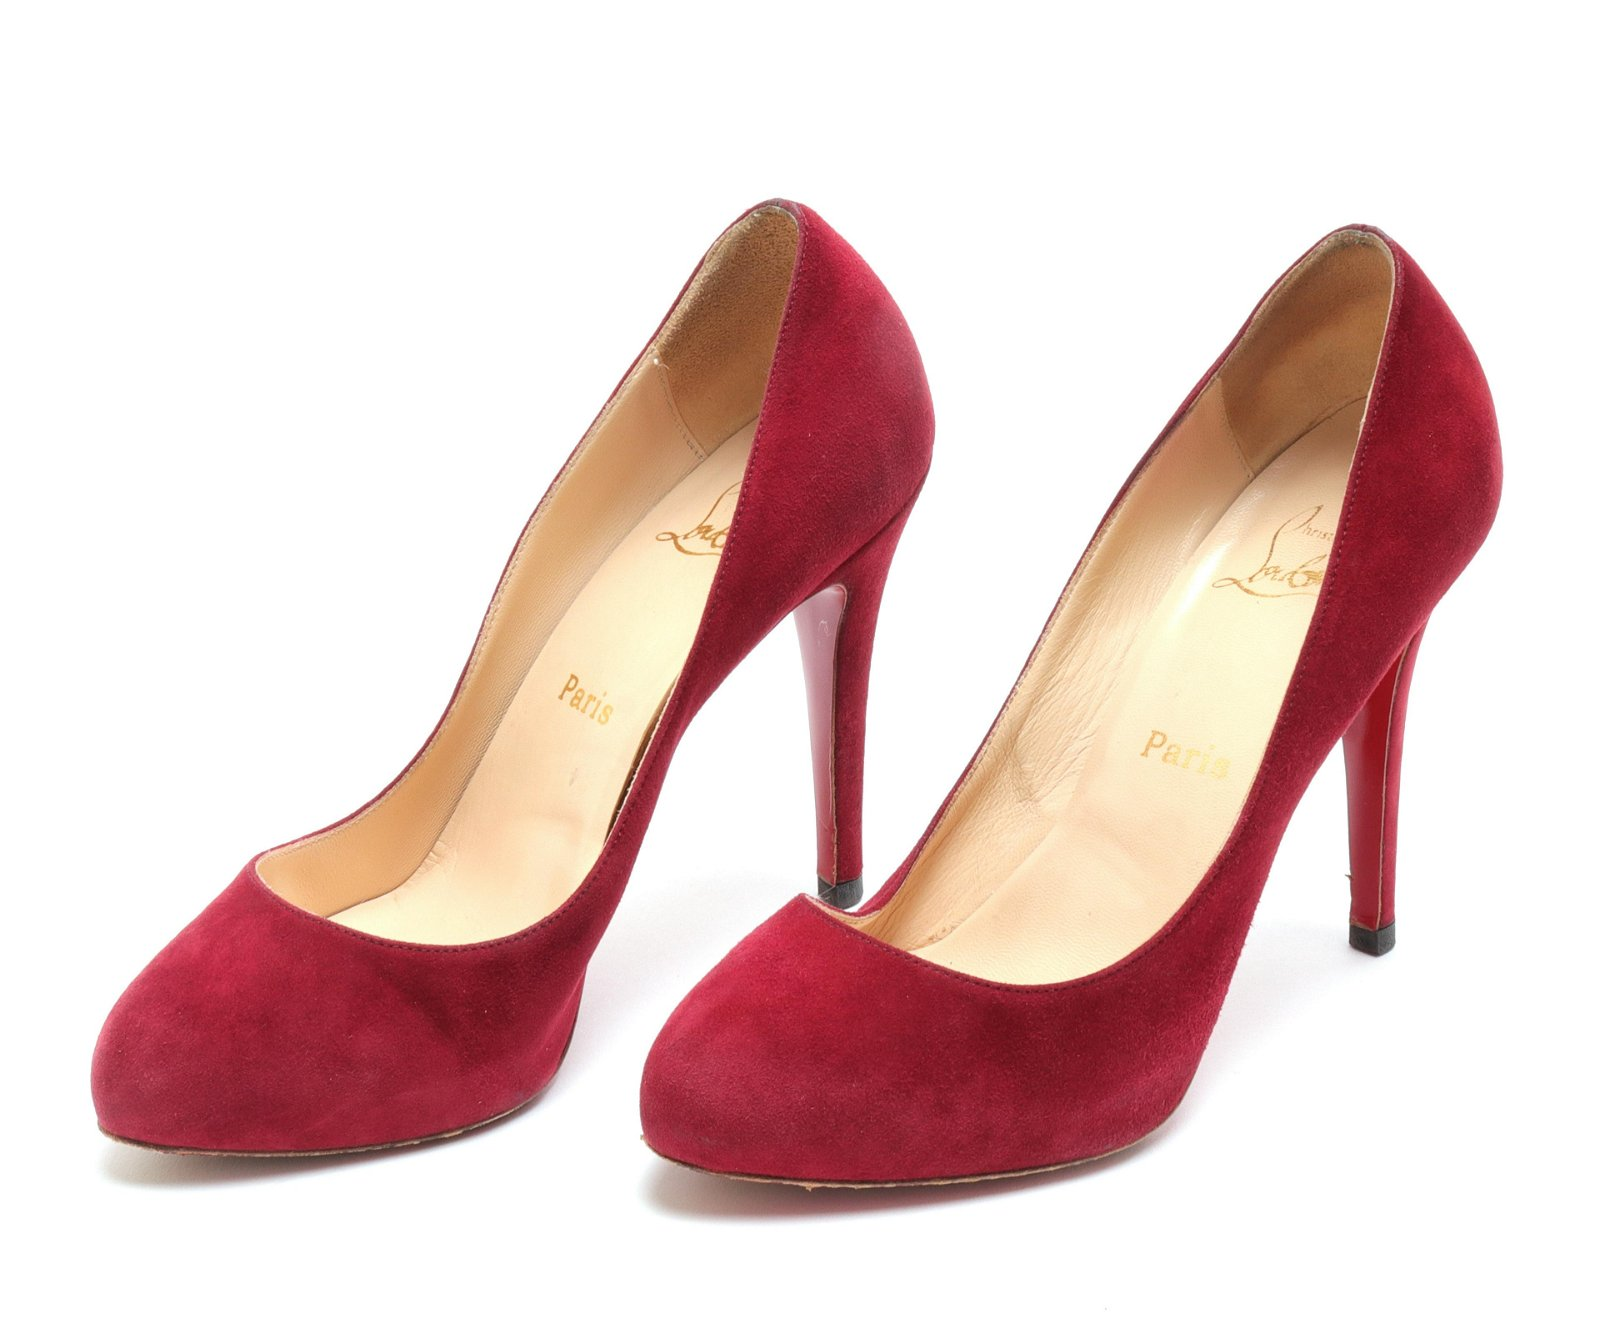 Christian Louboutin Red Suede Pumps, Size 38